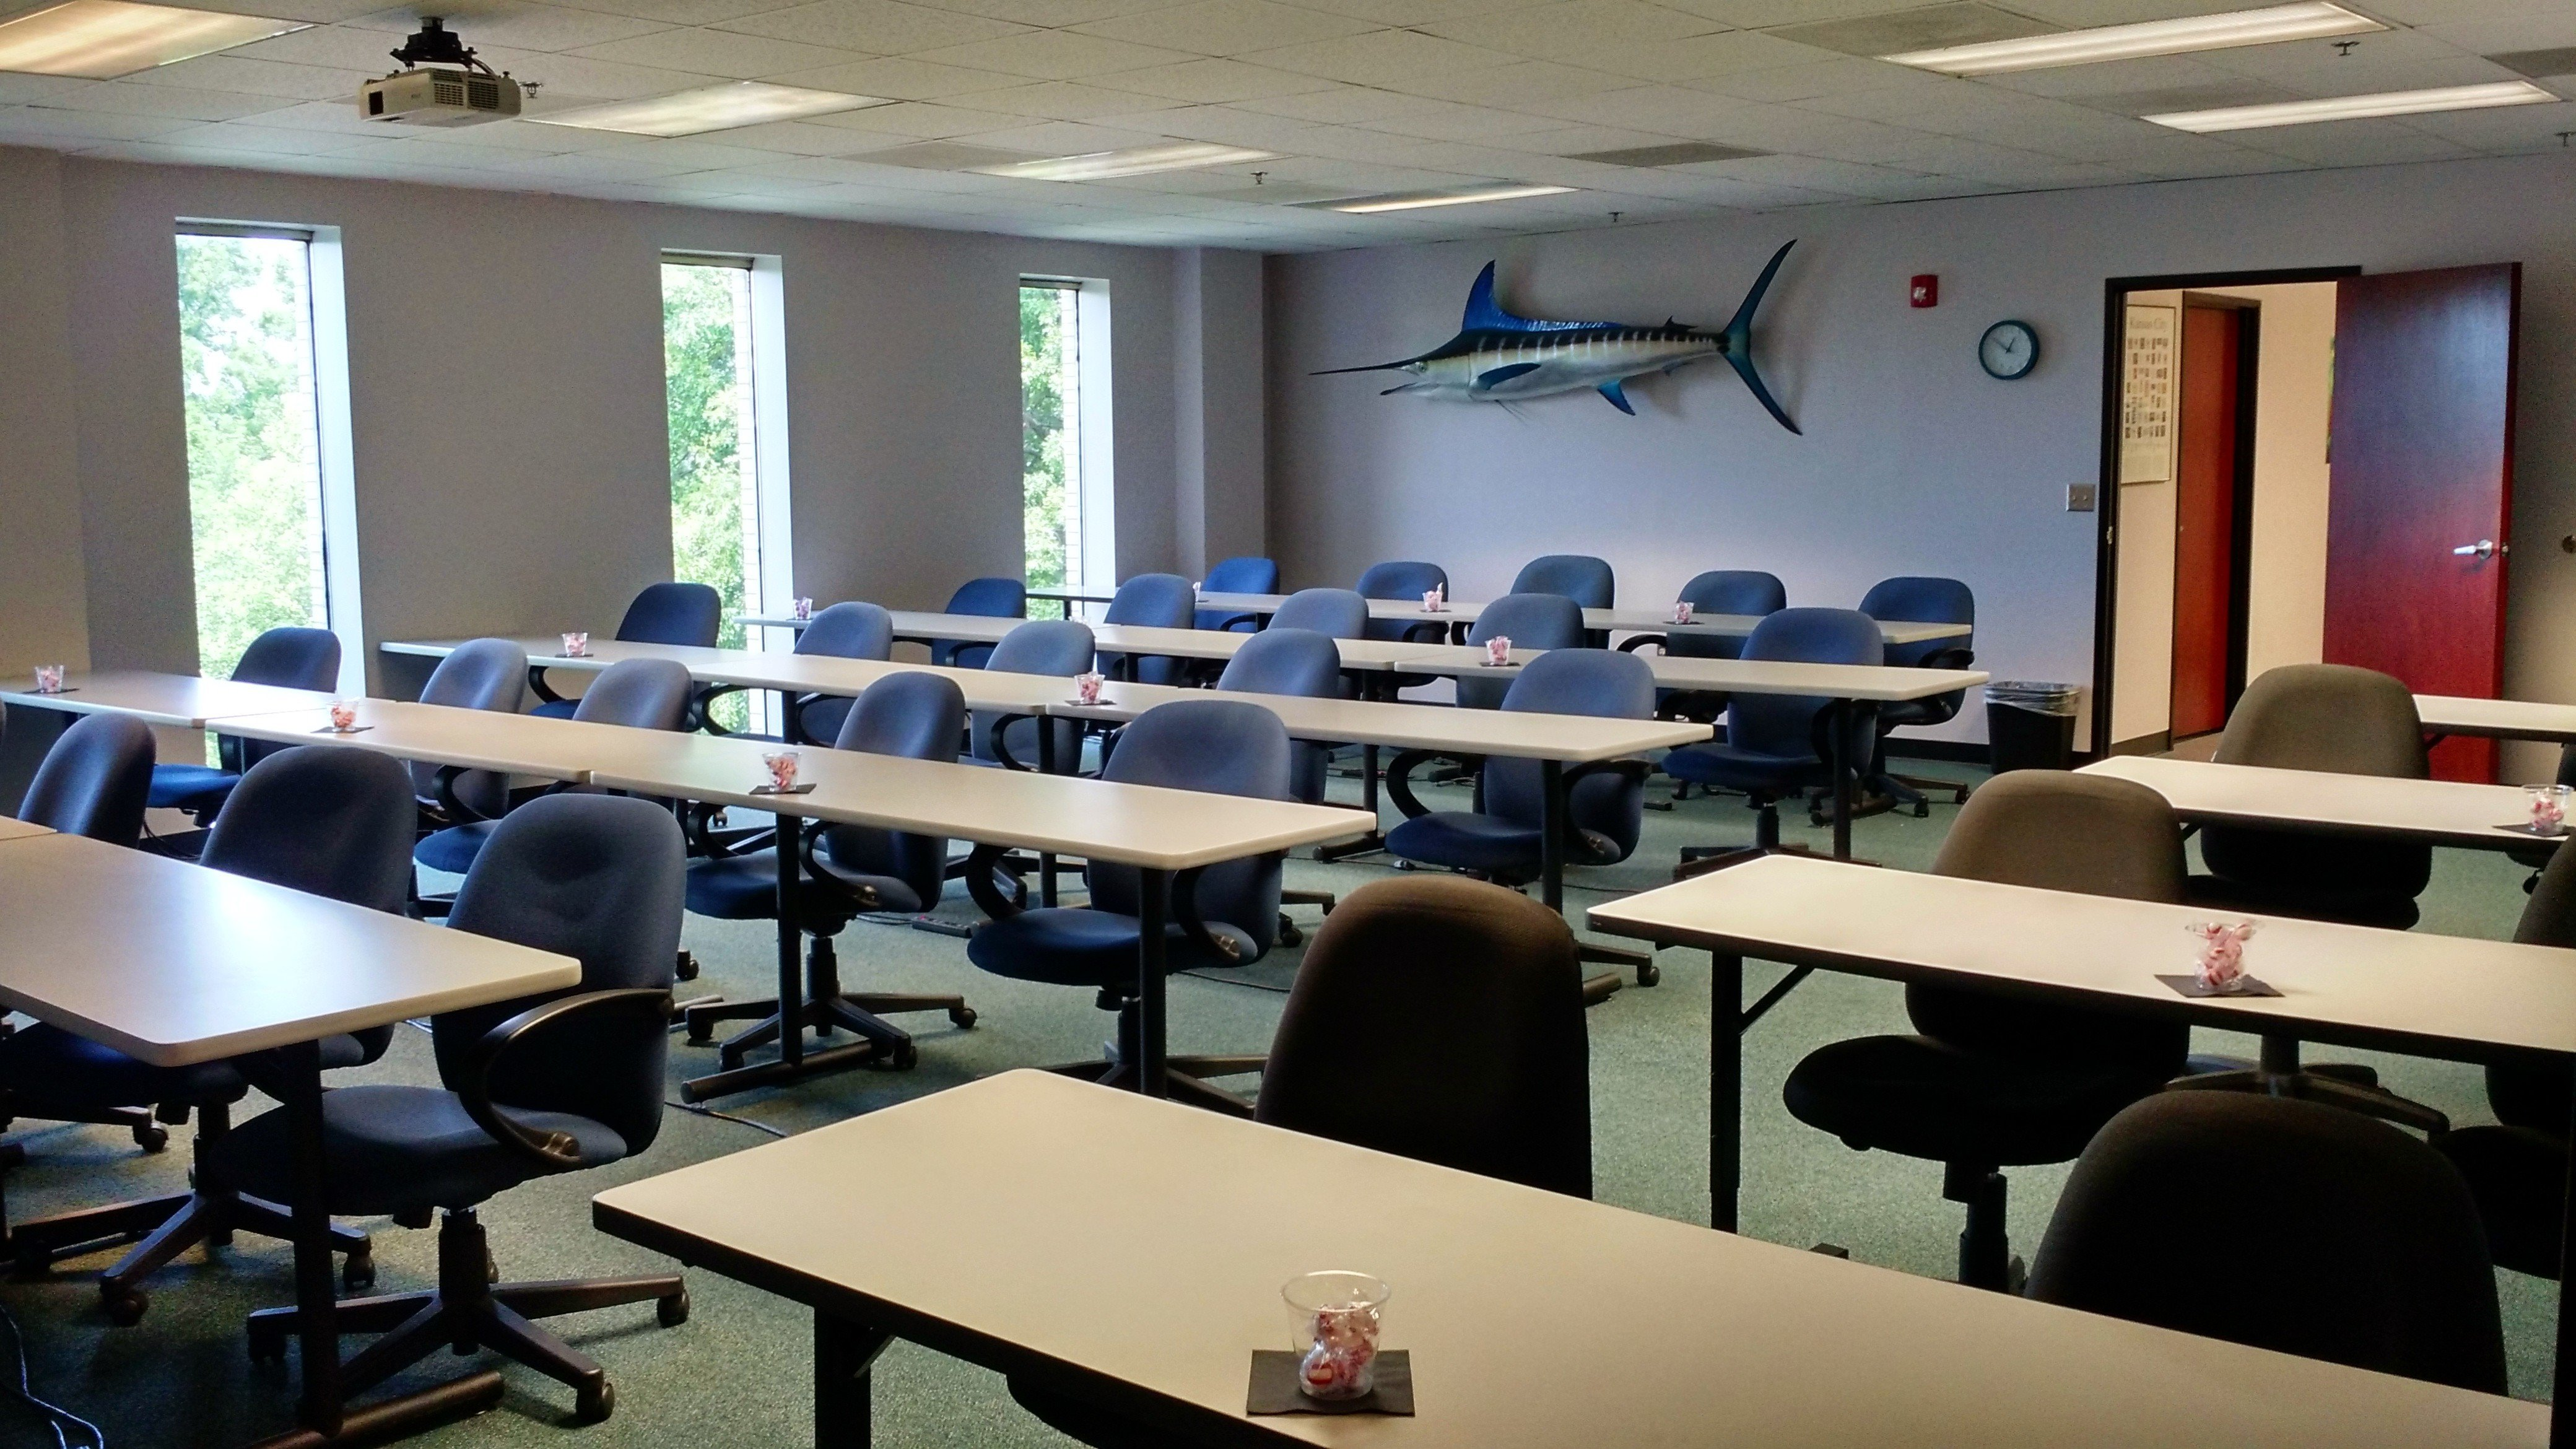 Meeting Rooms For Rent In Kansas City